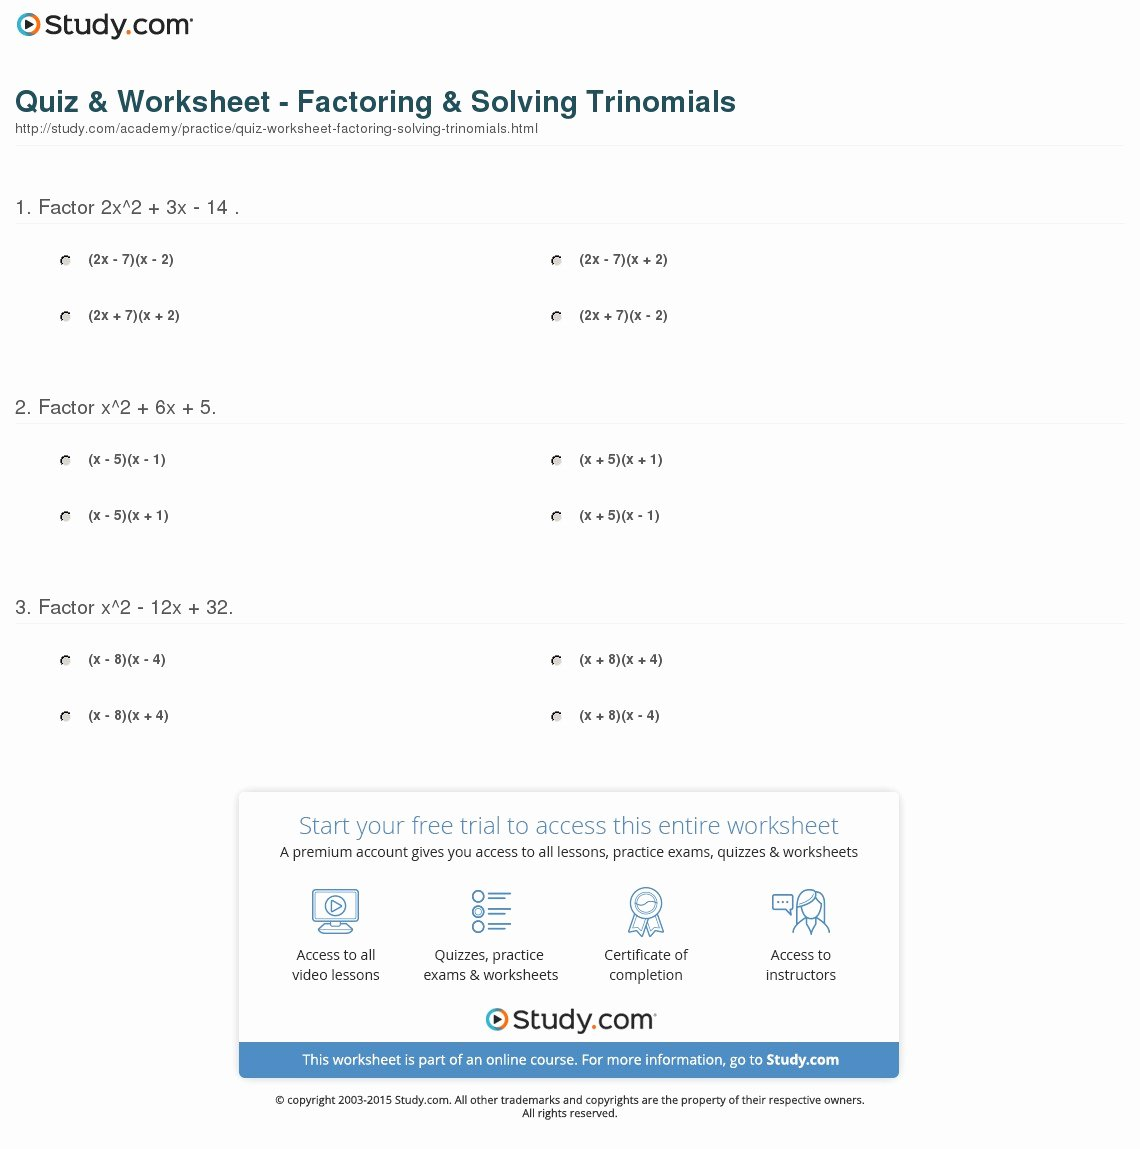 Factoring Practice Worksheet Answers New Quiz & Worksheet Factoring & solving Trinomials